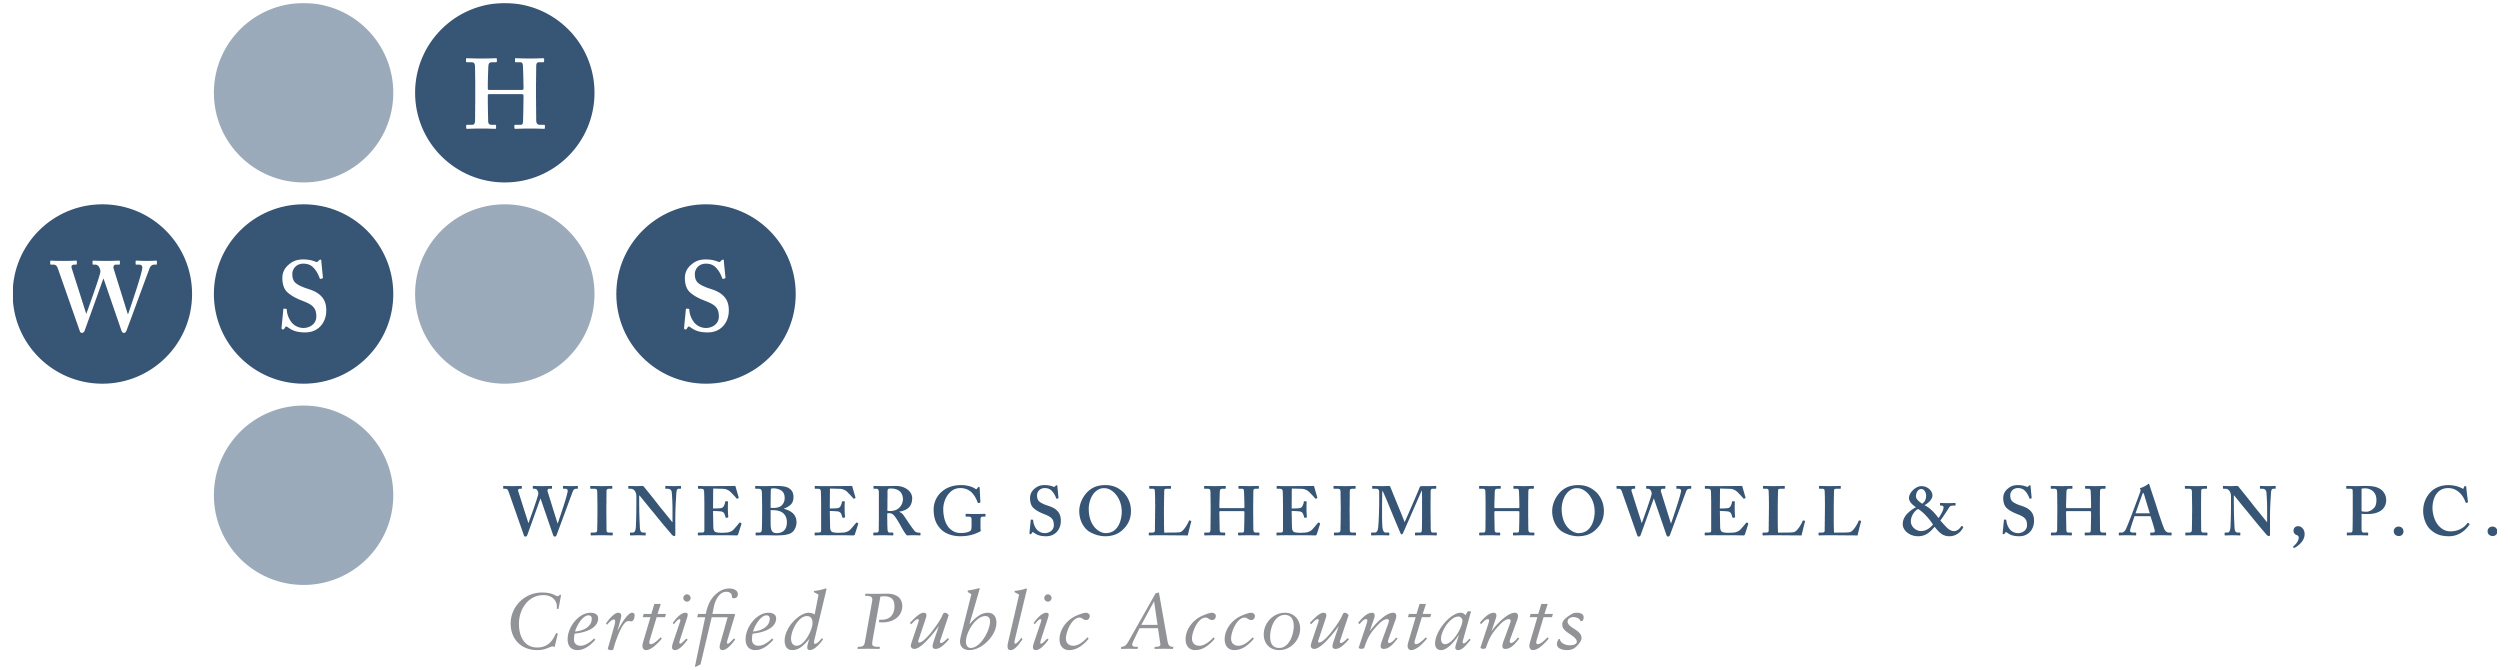 Wineberg Solheim Howell & Shain, P.C.